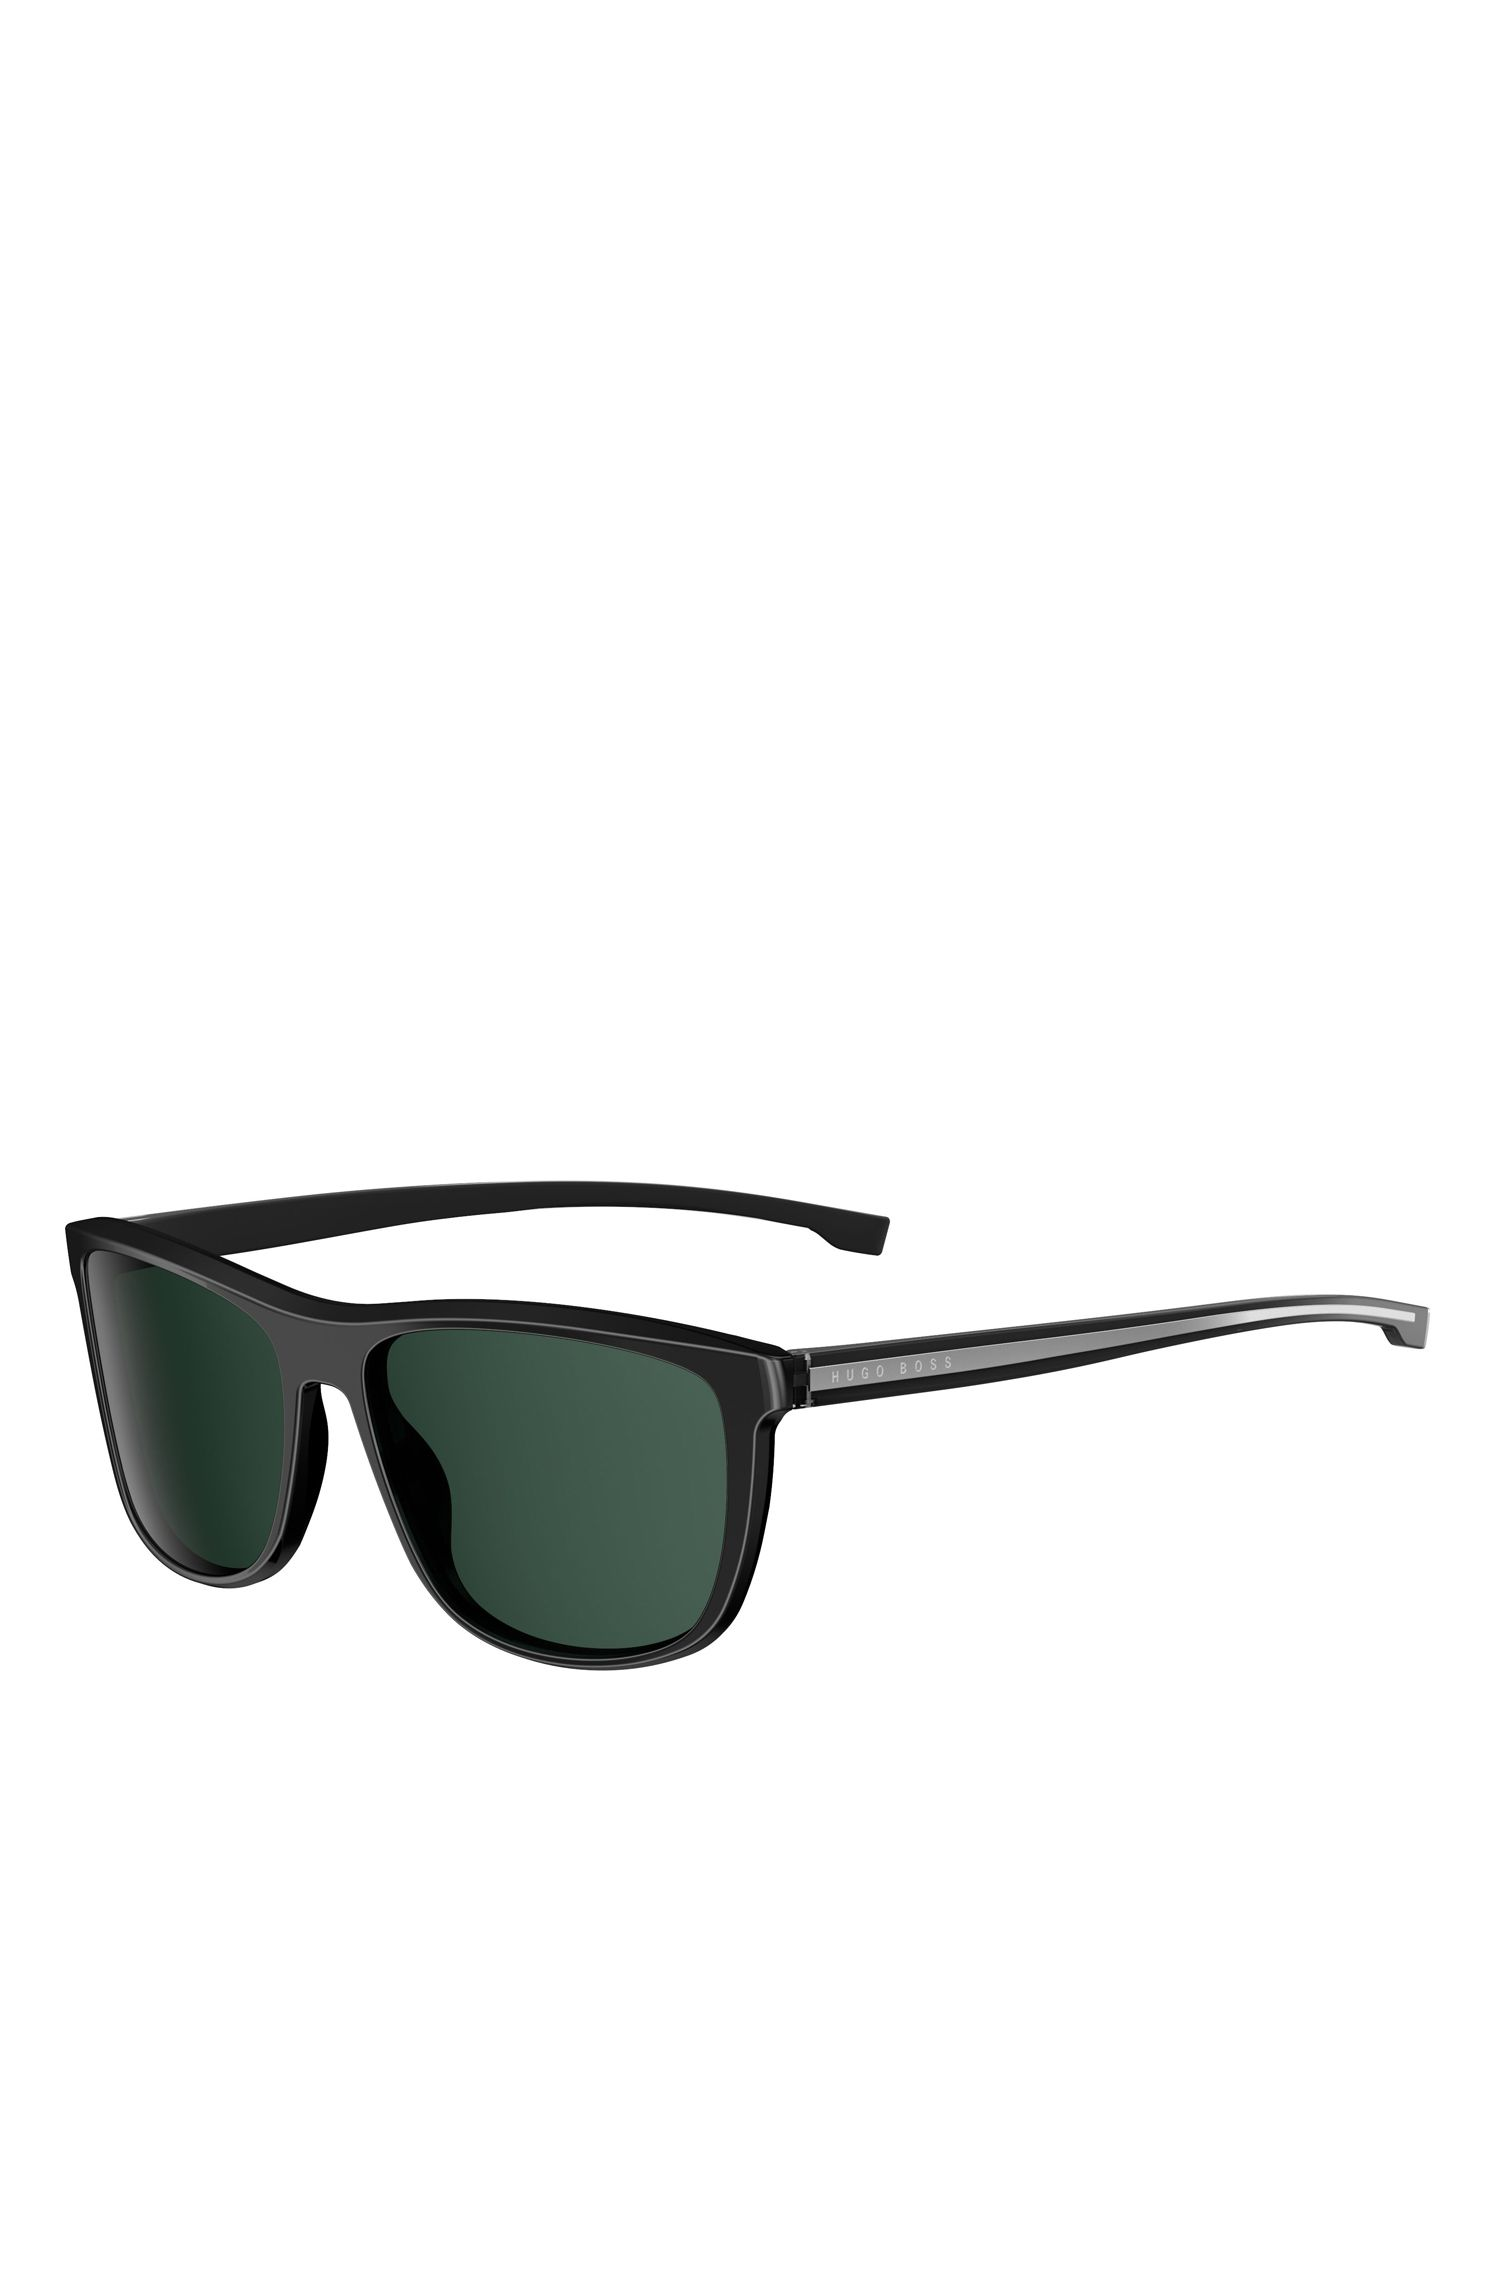 'BOSS 0874S' | Black Lens Top Bar Sunglasses